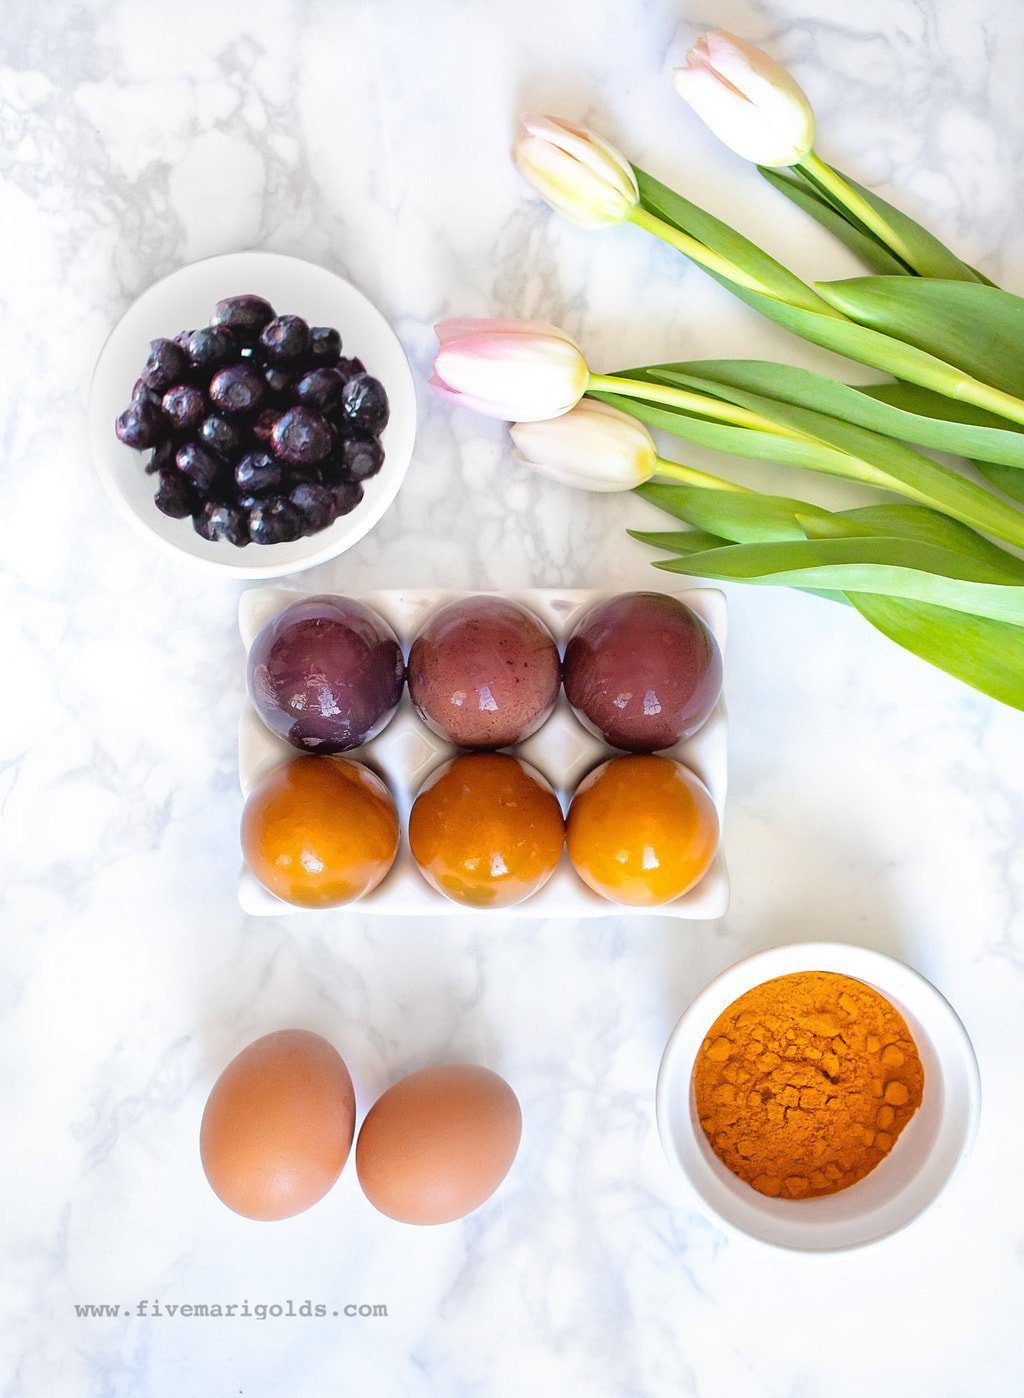 Naturally dye brown easter eggs with blueberries and turmeric